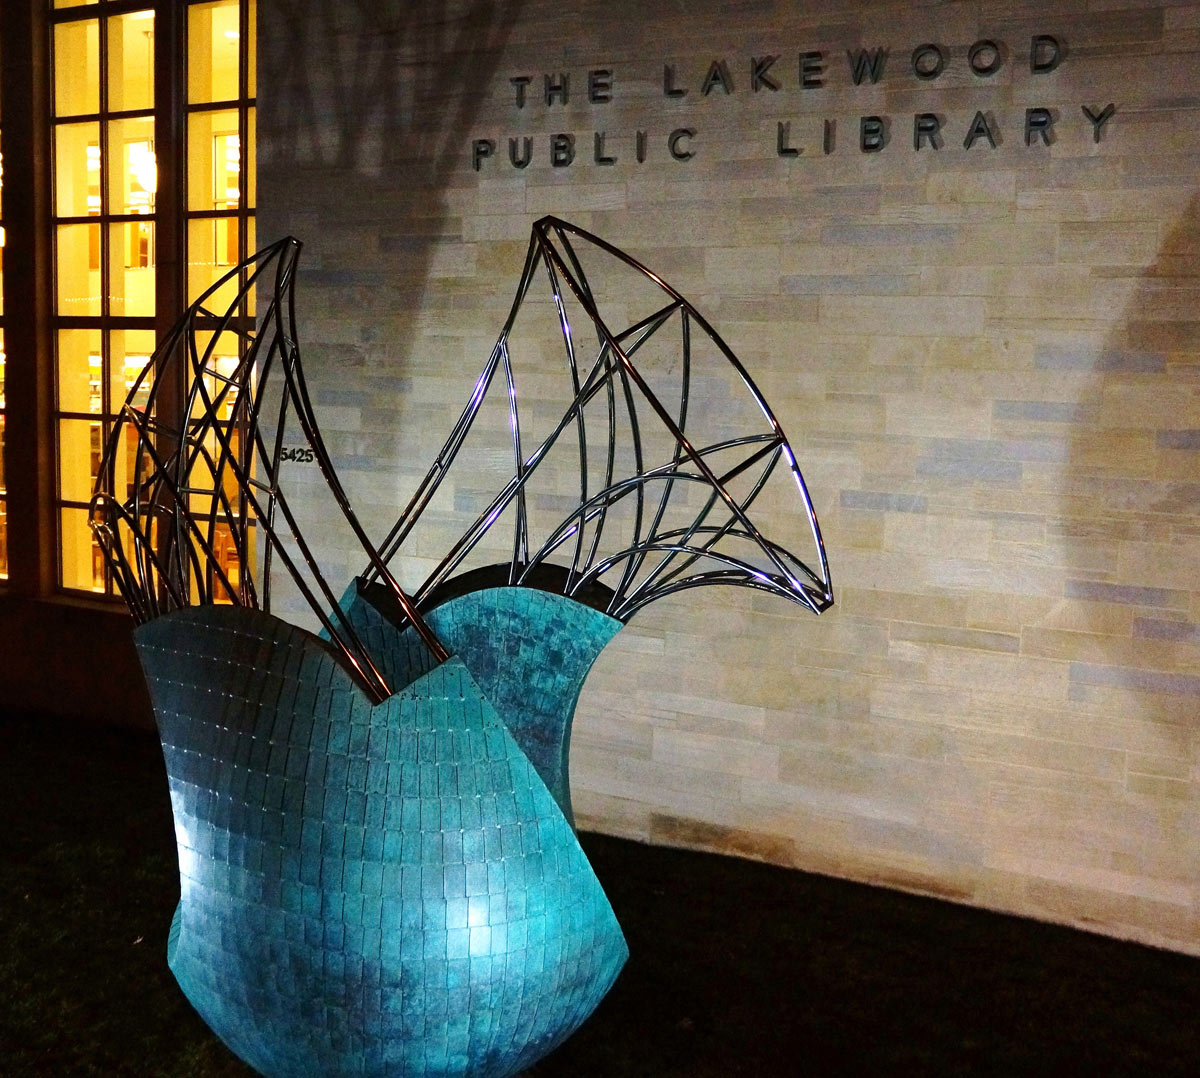 Transversion at night a  bronze and stainless public sculpture by Peter Diepenbrock Lakewood Ohio